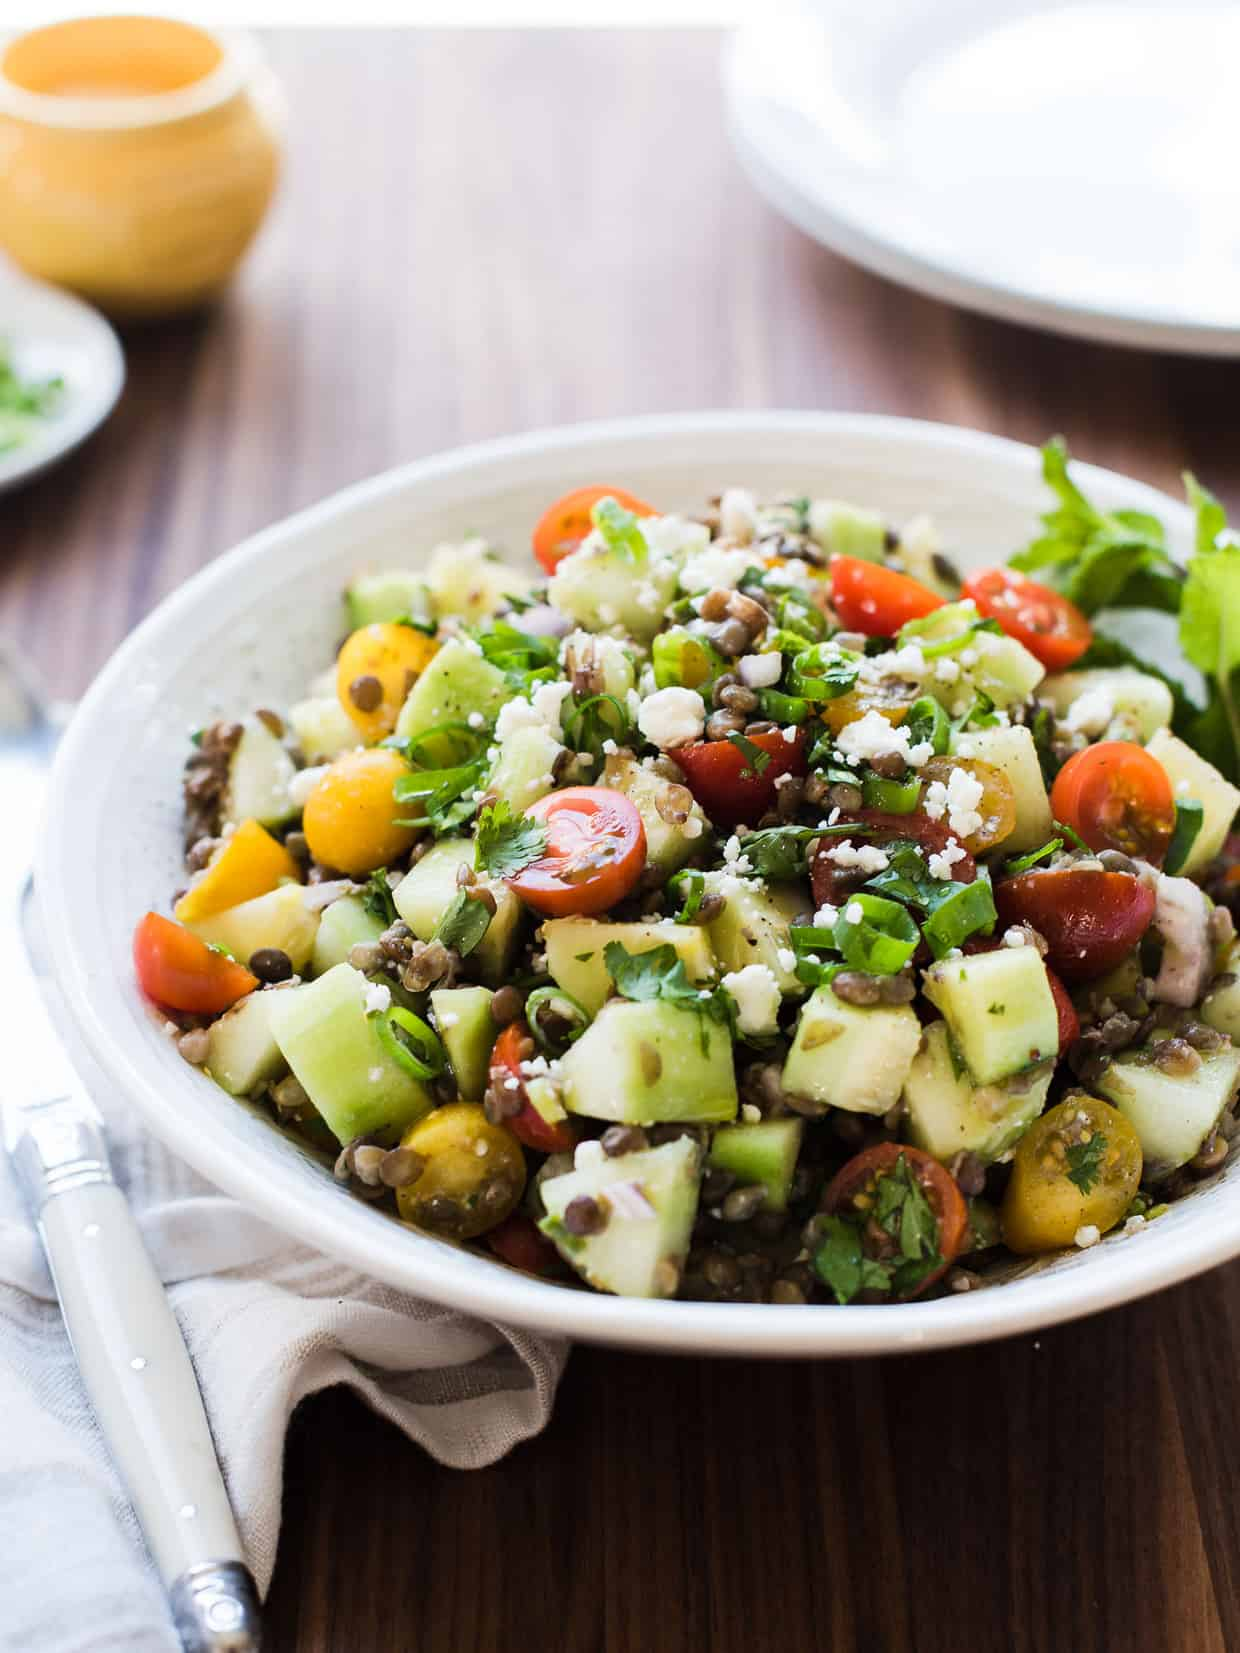 Make the most of tomatoes and cucumbers in this Summer Lentil Salad! It pairs nicely with anything grilled and is a wonderful vegetarian main dish, as well.